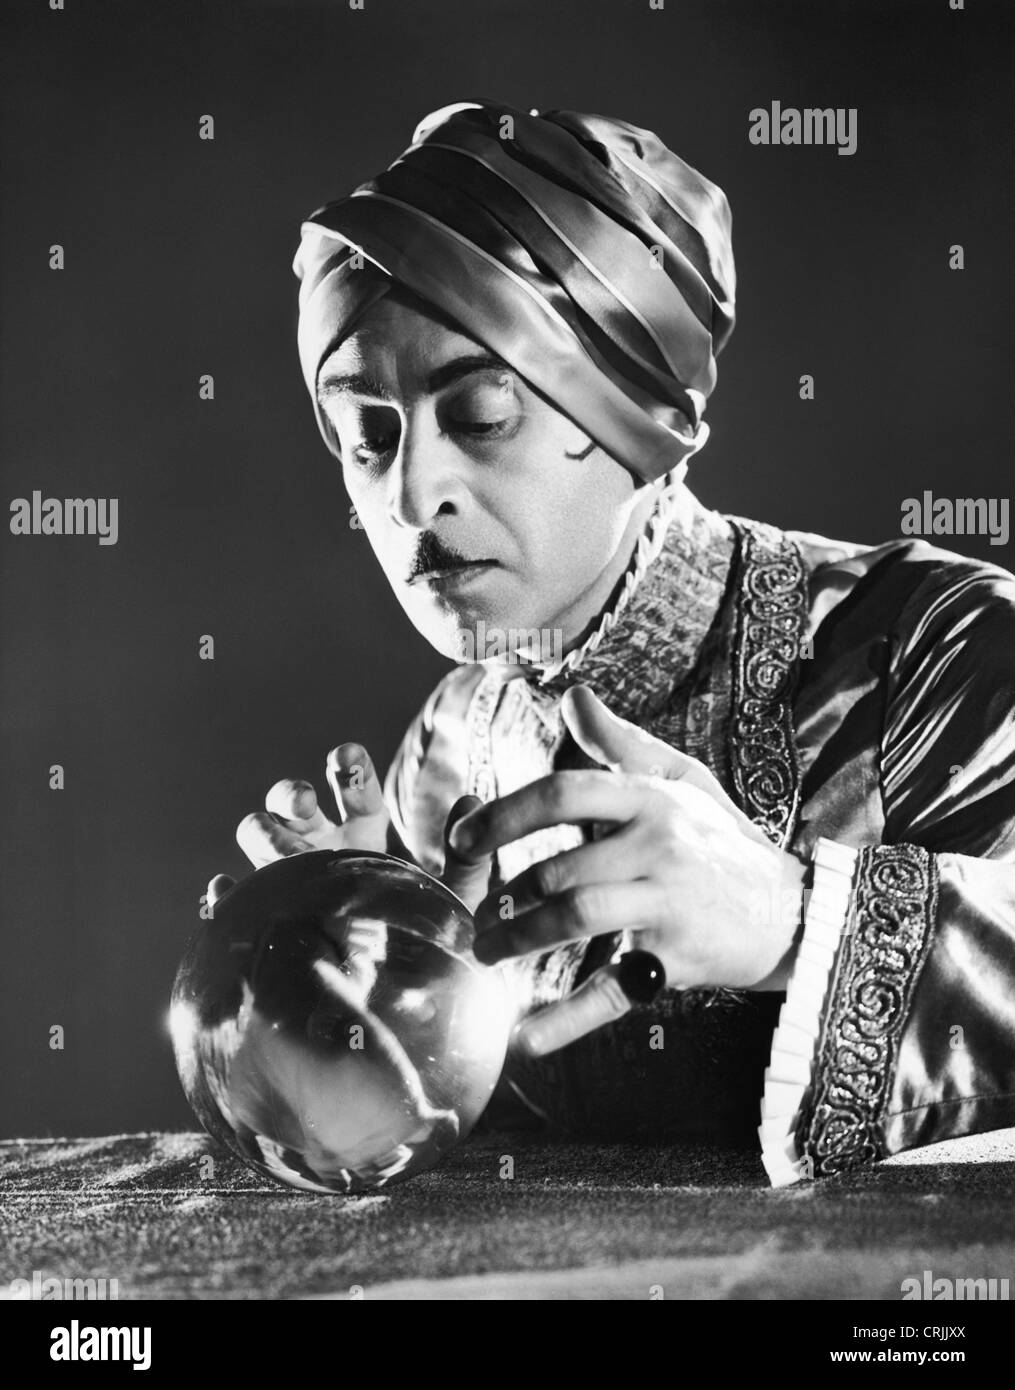 Fortune teller and crystal ball - Stock Image